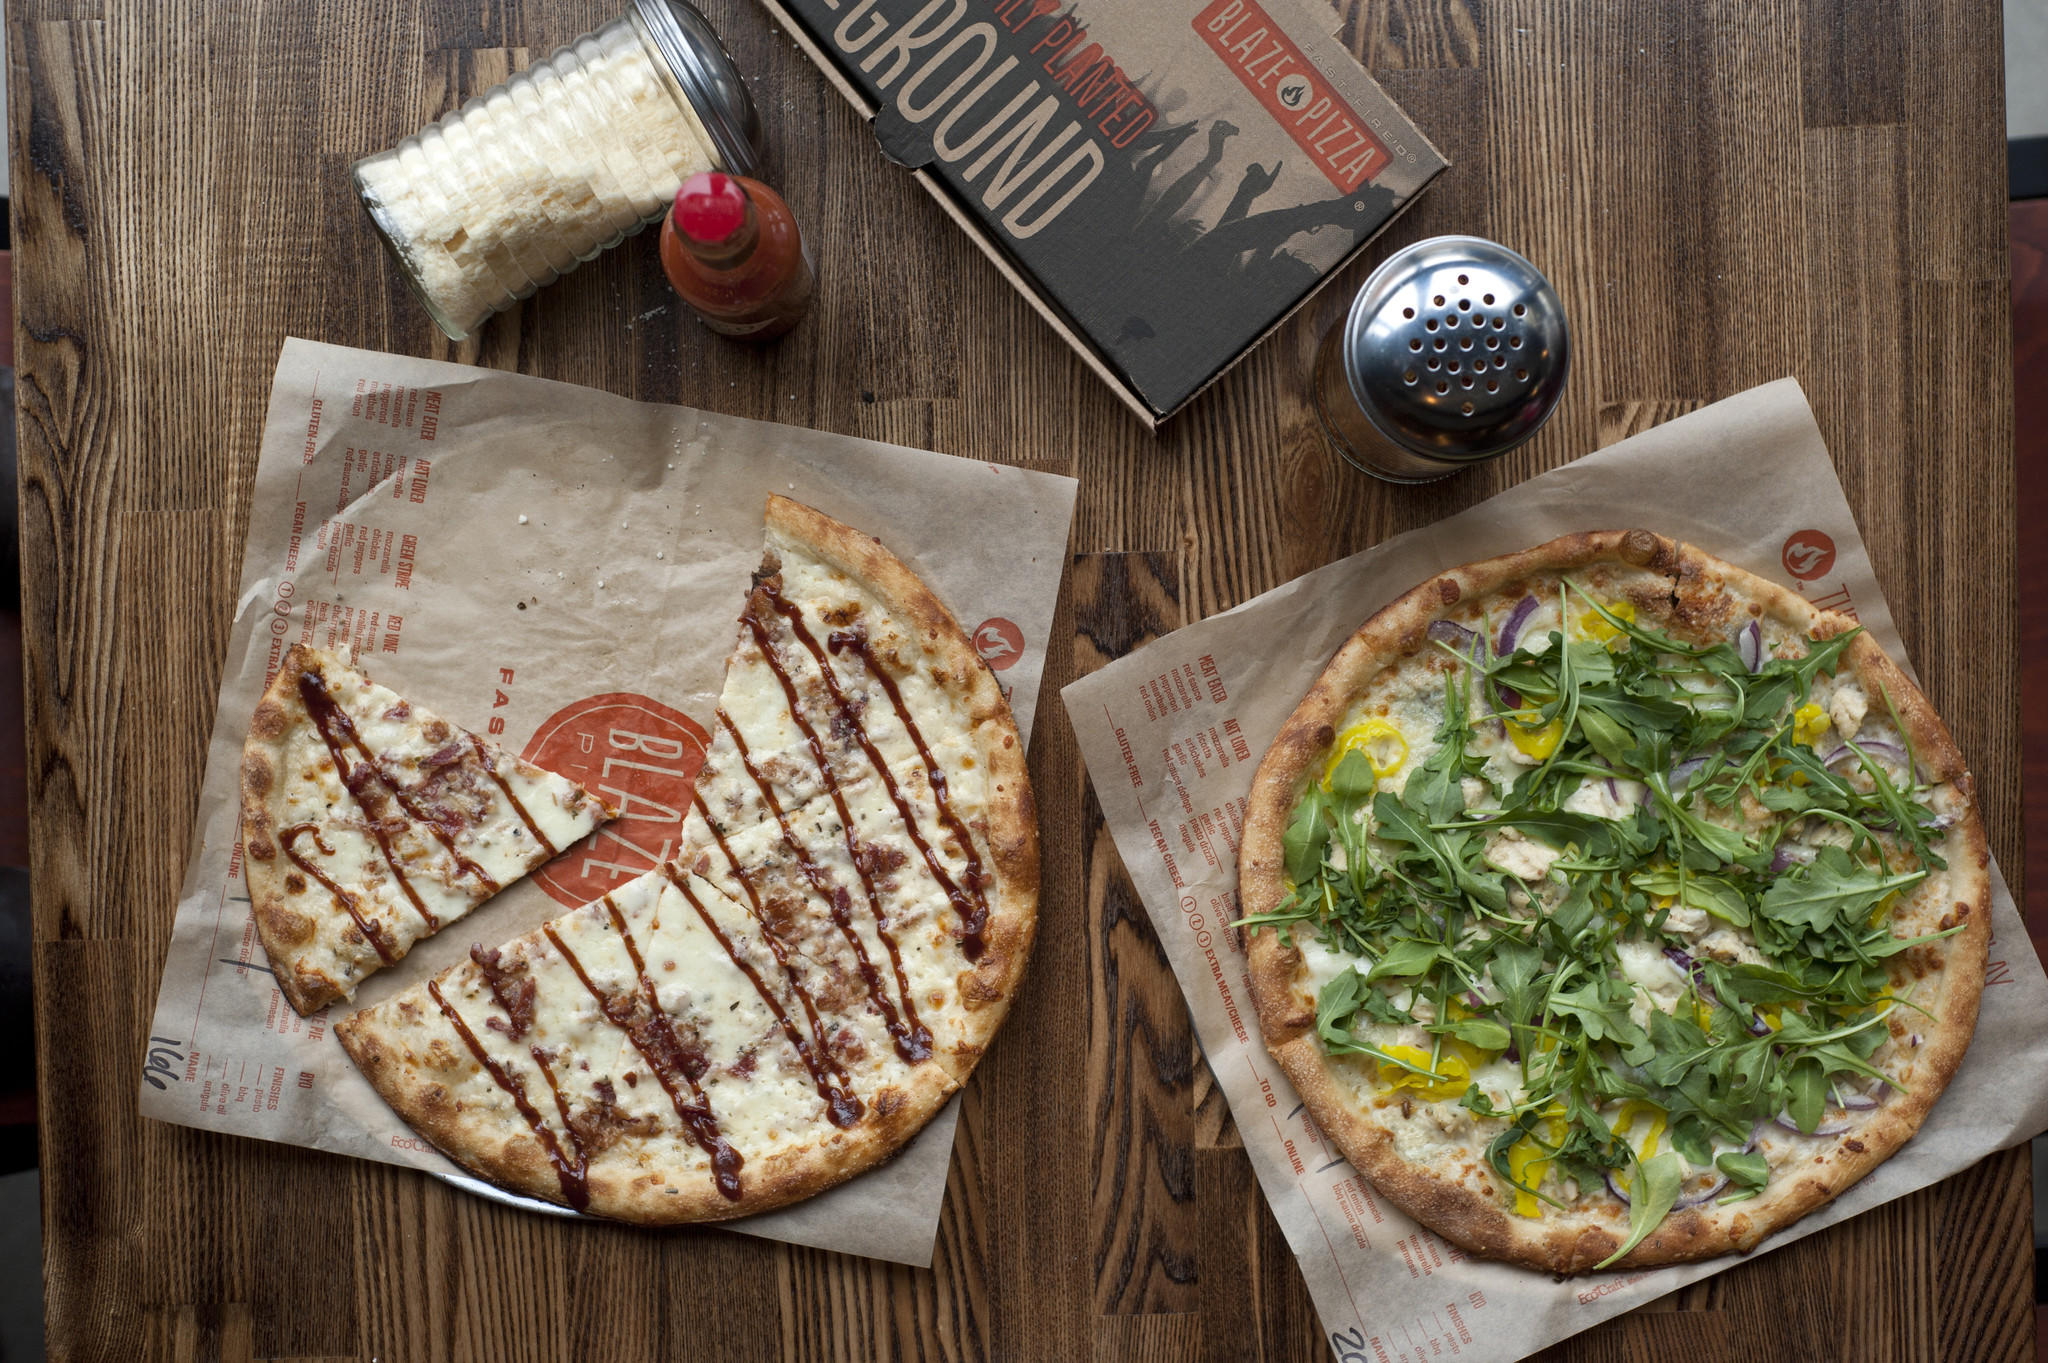 Barbecue chicken and White Top pizzas at Blaze Pizza in Lakeview